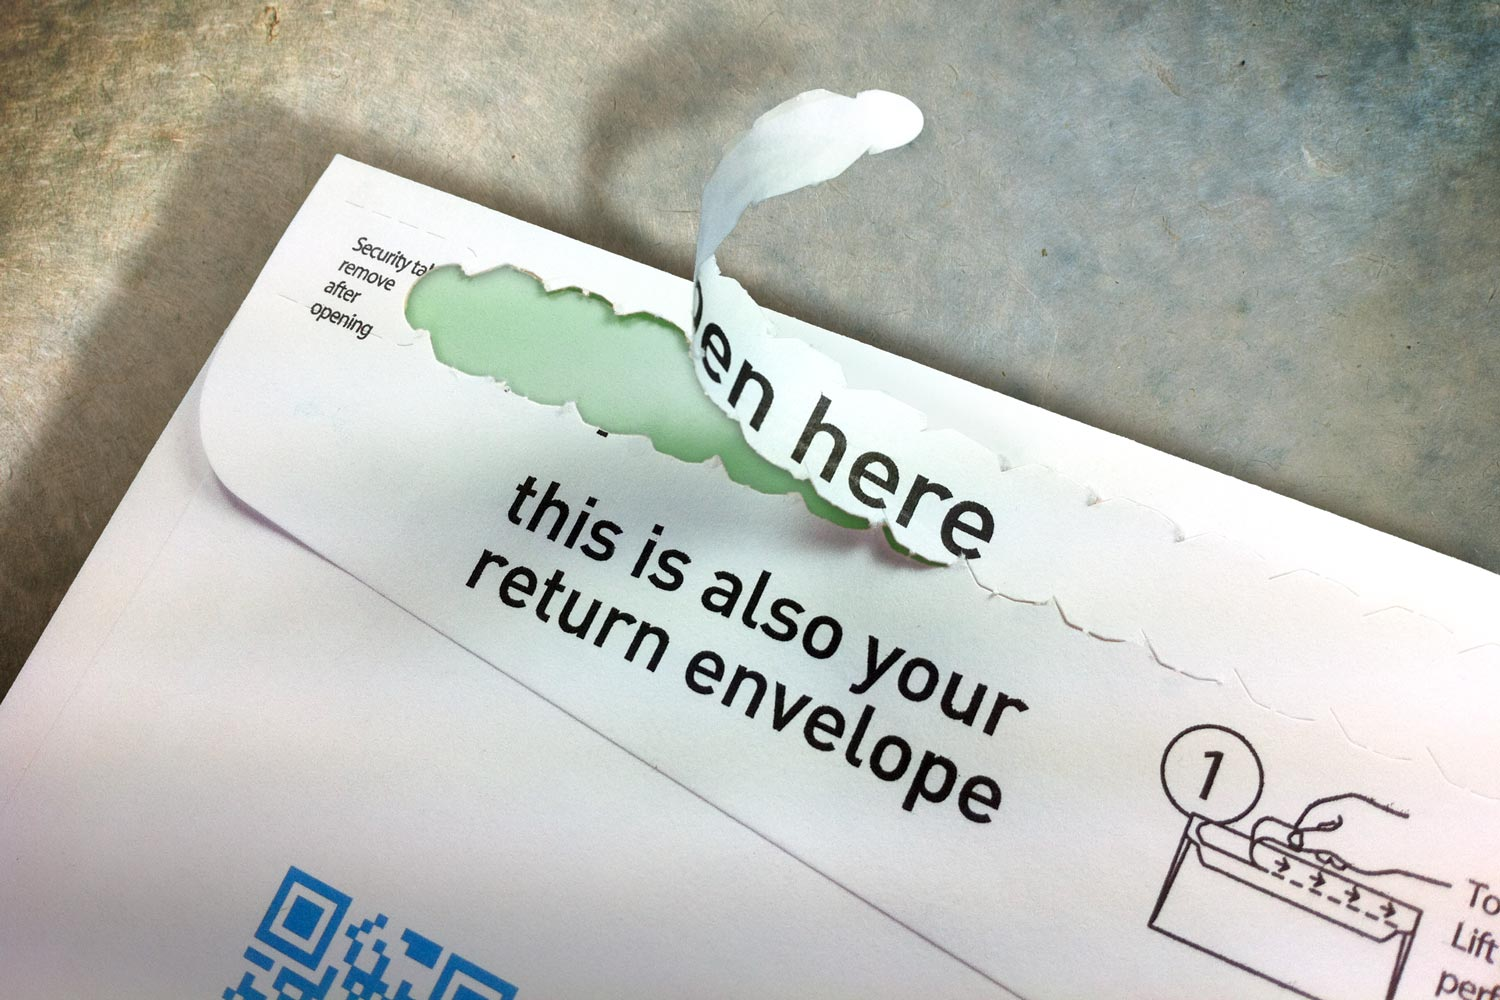 This simple strip gets your envelope opened fast and easily